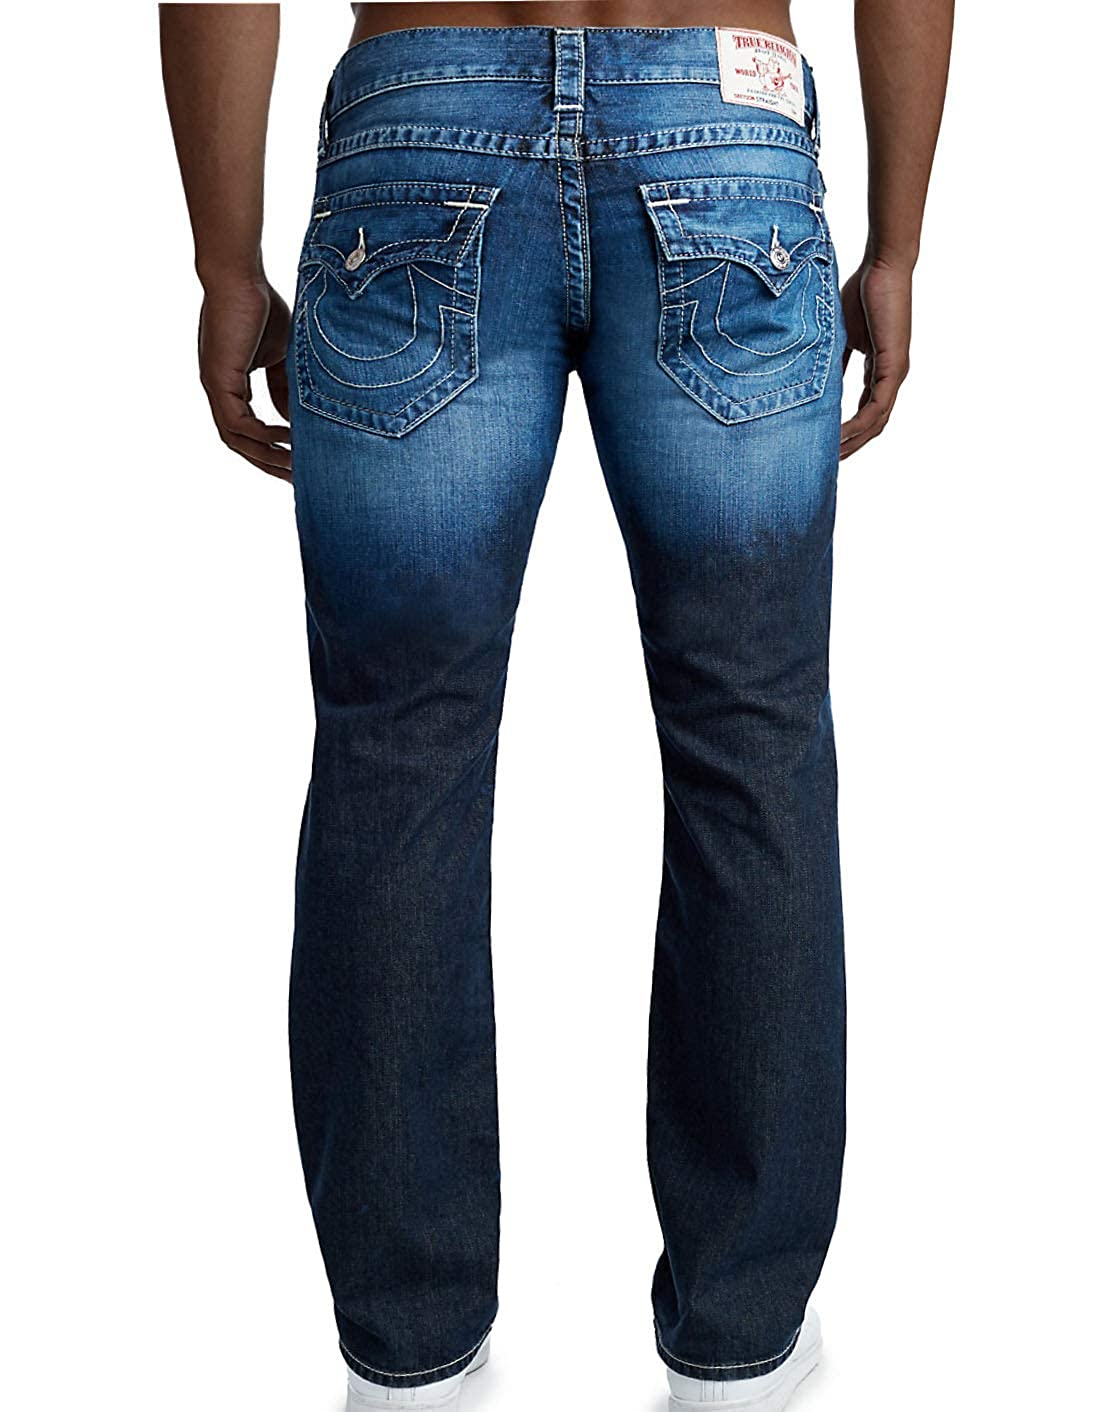 65e9b13f4 Amazon.com  True Religion Men s Straight Flap Natural Denim Jeans-Midnight  Seeker-33  Clothing